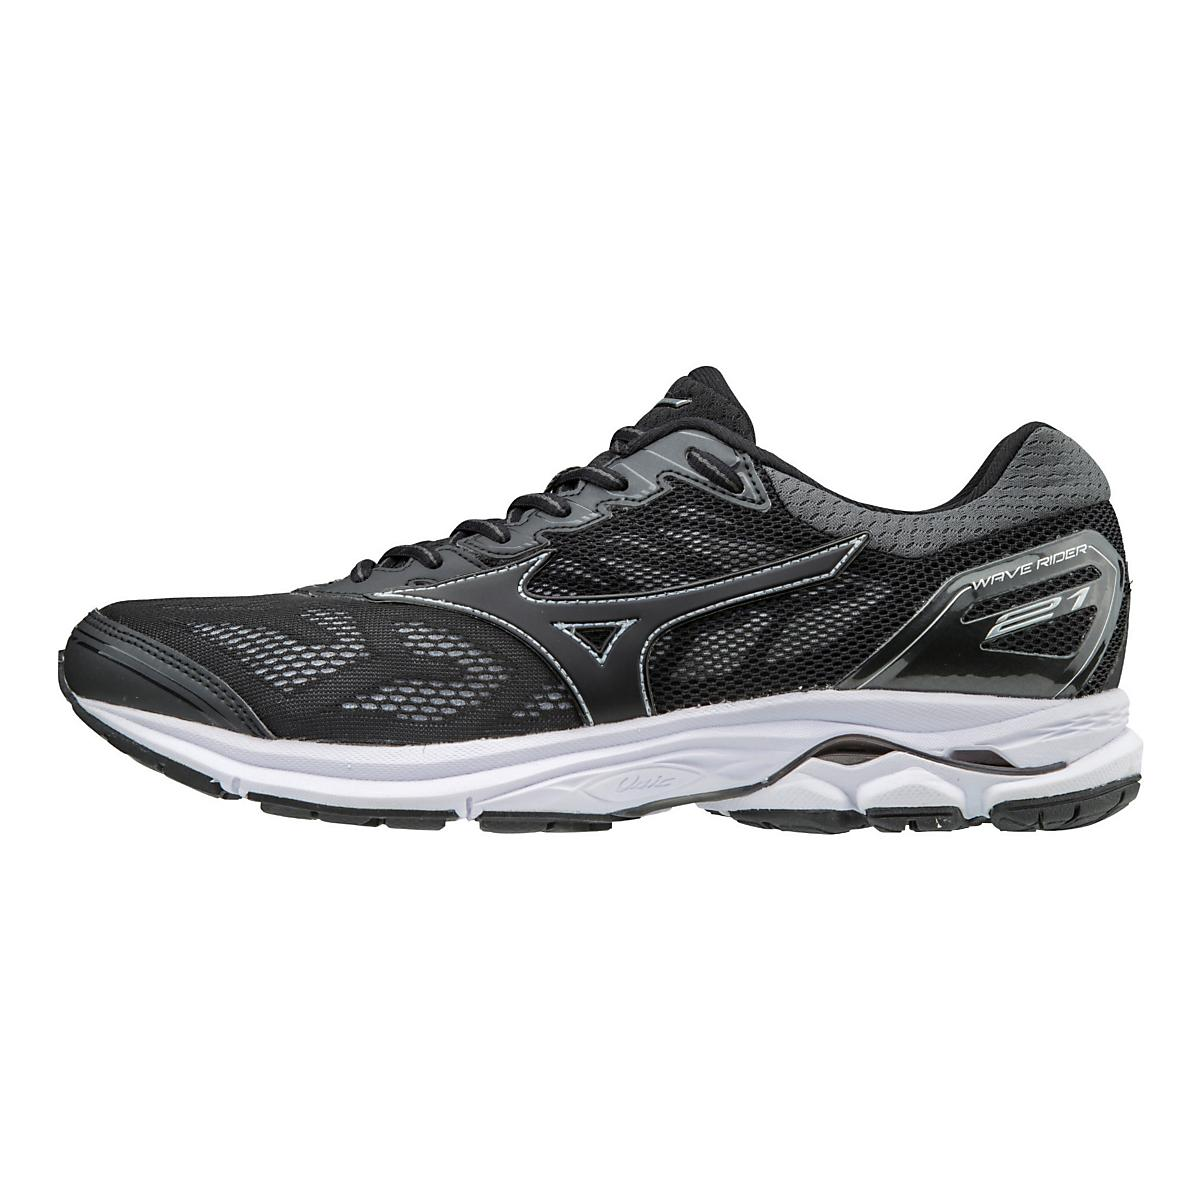 95e1f28ee3977 Men s Mizuno Wave Rider 21 Running Shoes from Road Runner Sports